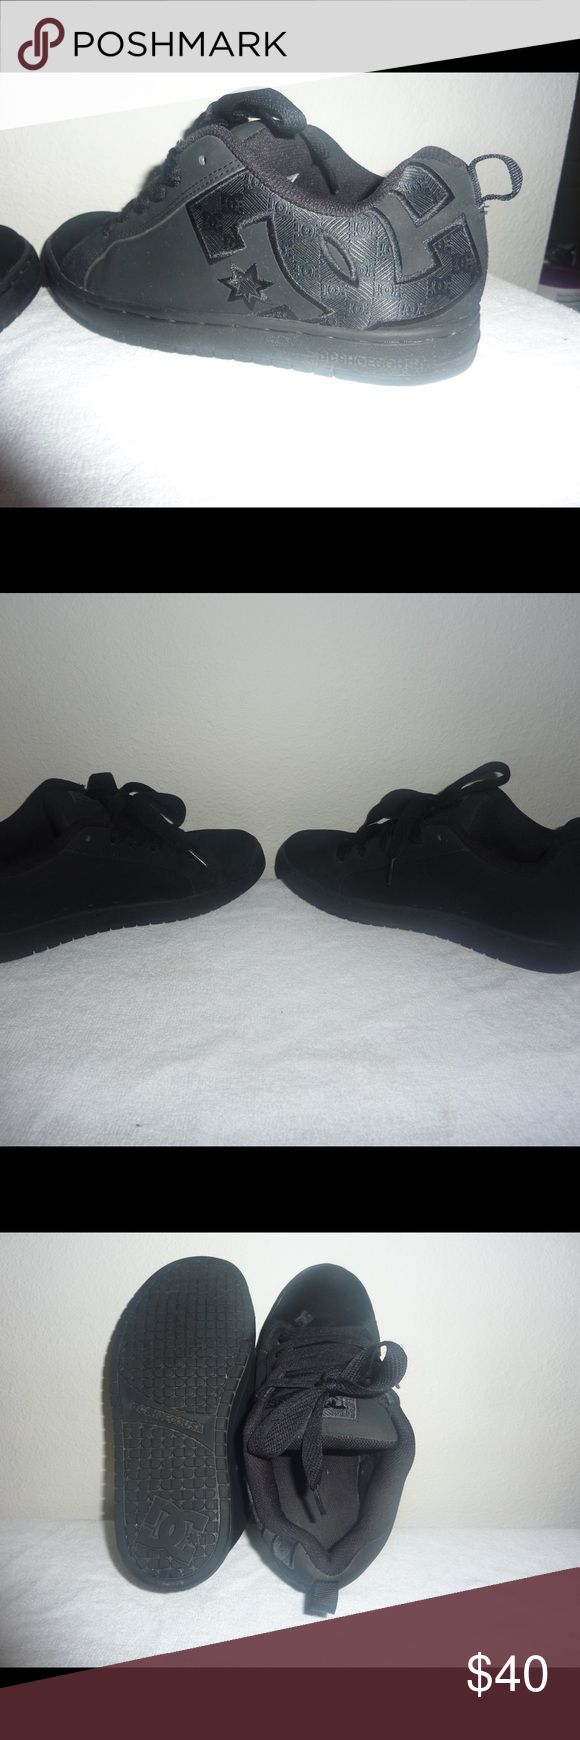 DC Sneakers in all black--size 8.5 **Normally $60 Black DC Sneakers in fantastic condition. These DC's were barely worn and have no flaws. The tread is almost new. Brand new these are usually $60.00. Going for $40, well worth the price. Size 8.5 in Mens. DC Shoes Sneakers